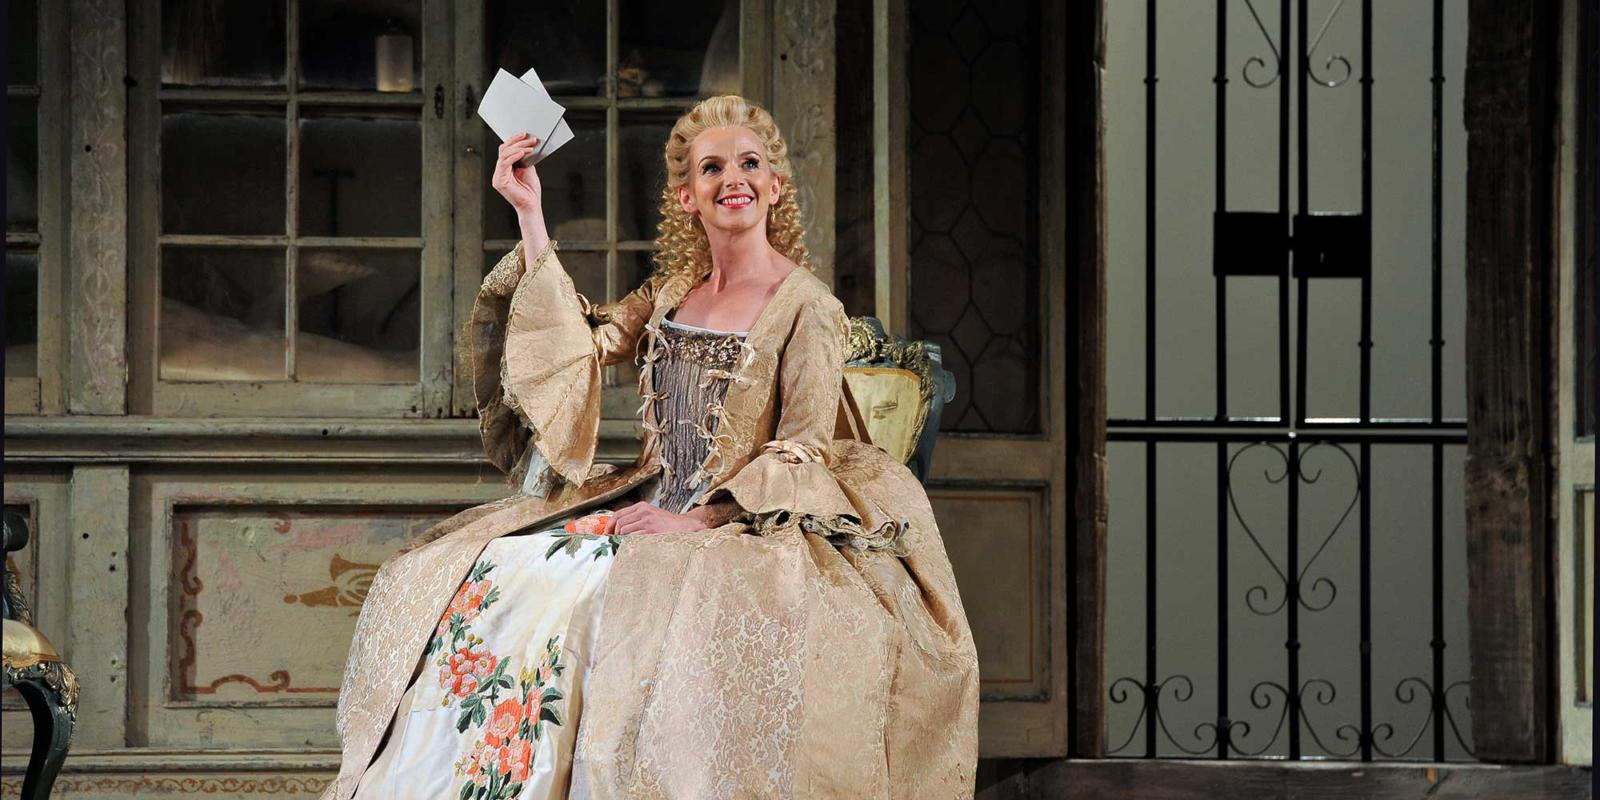 ENO The Barber of Seville: Sarah Tynan (c) Robbie Jack